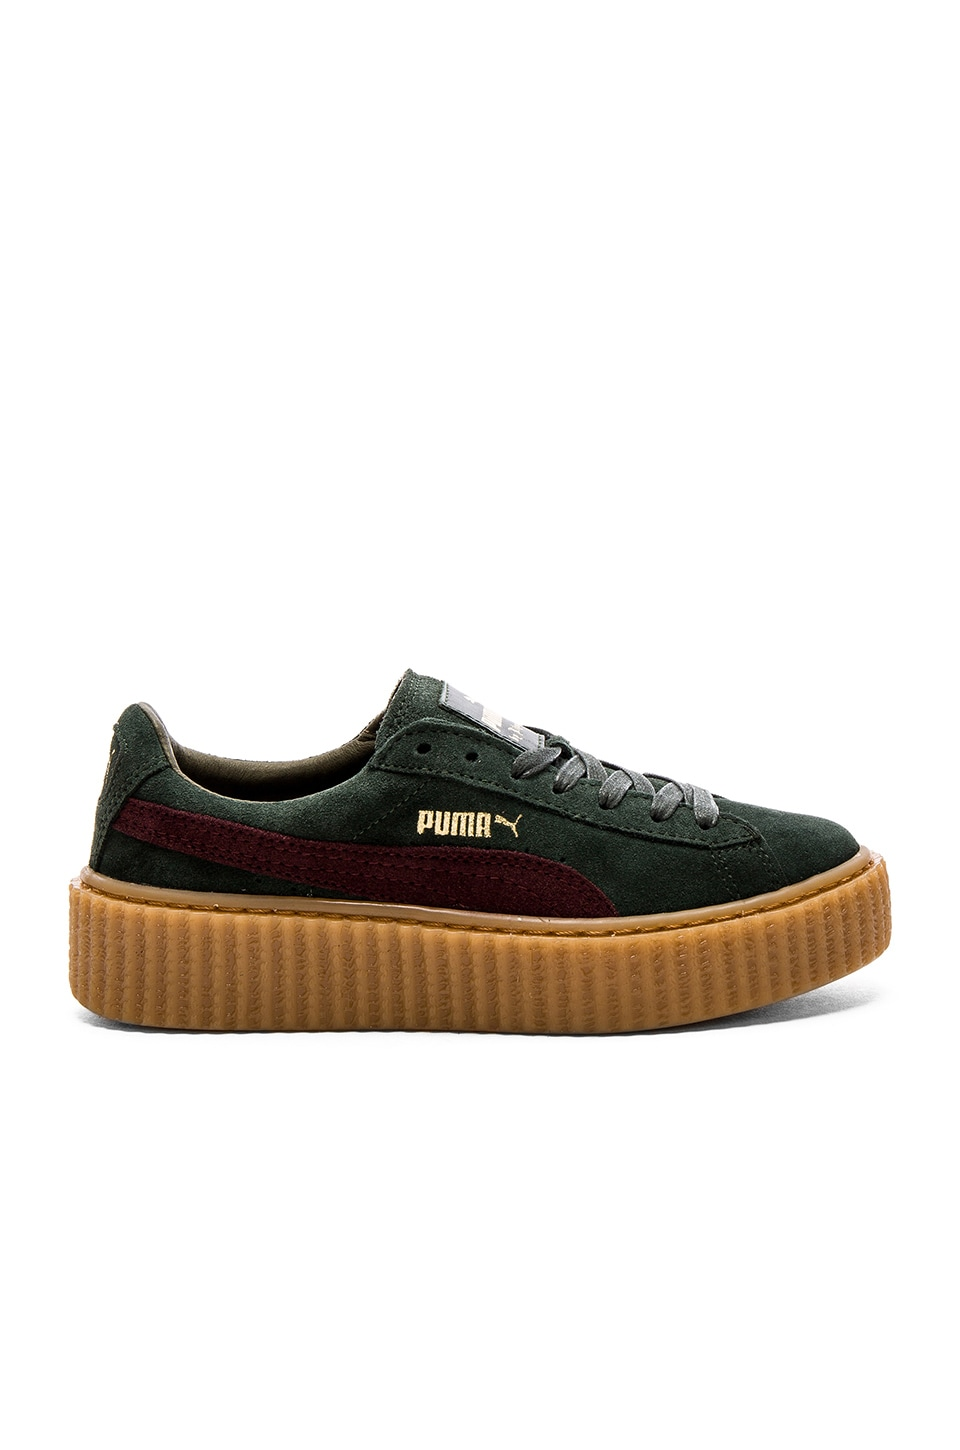 buy online c18b5 c46be Puma x Rihanna Creepers Sneaker in Green Bordeaux Gum | REVOLVE